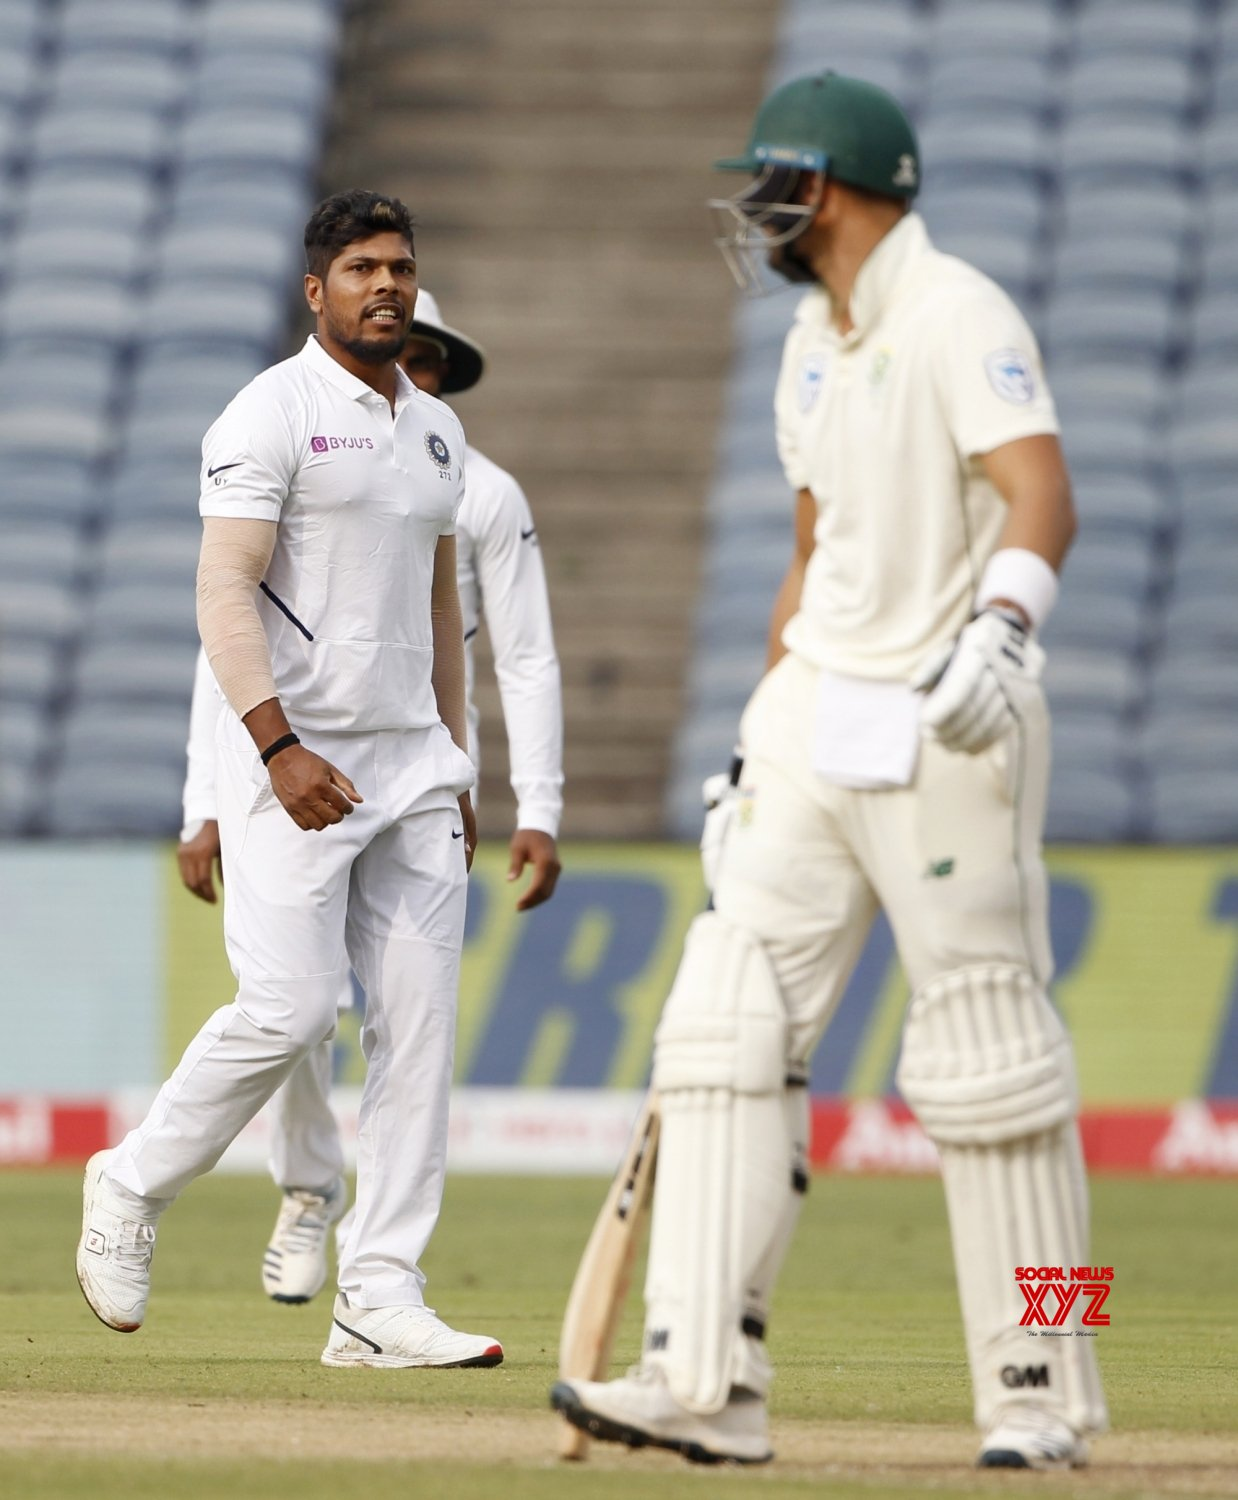 Pune: 2nd Test - India Vs South Africa - Day 2 (Batch - 19) #Gallery